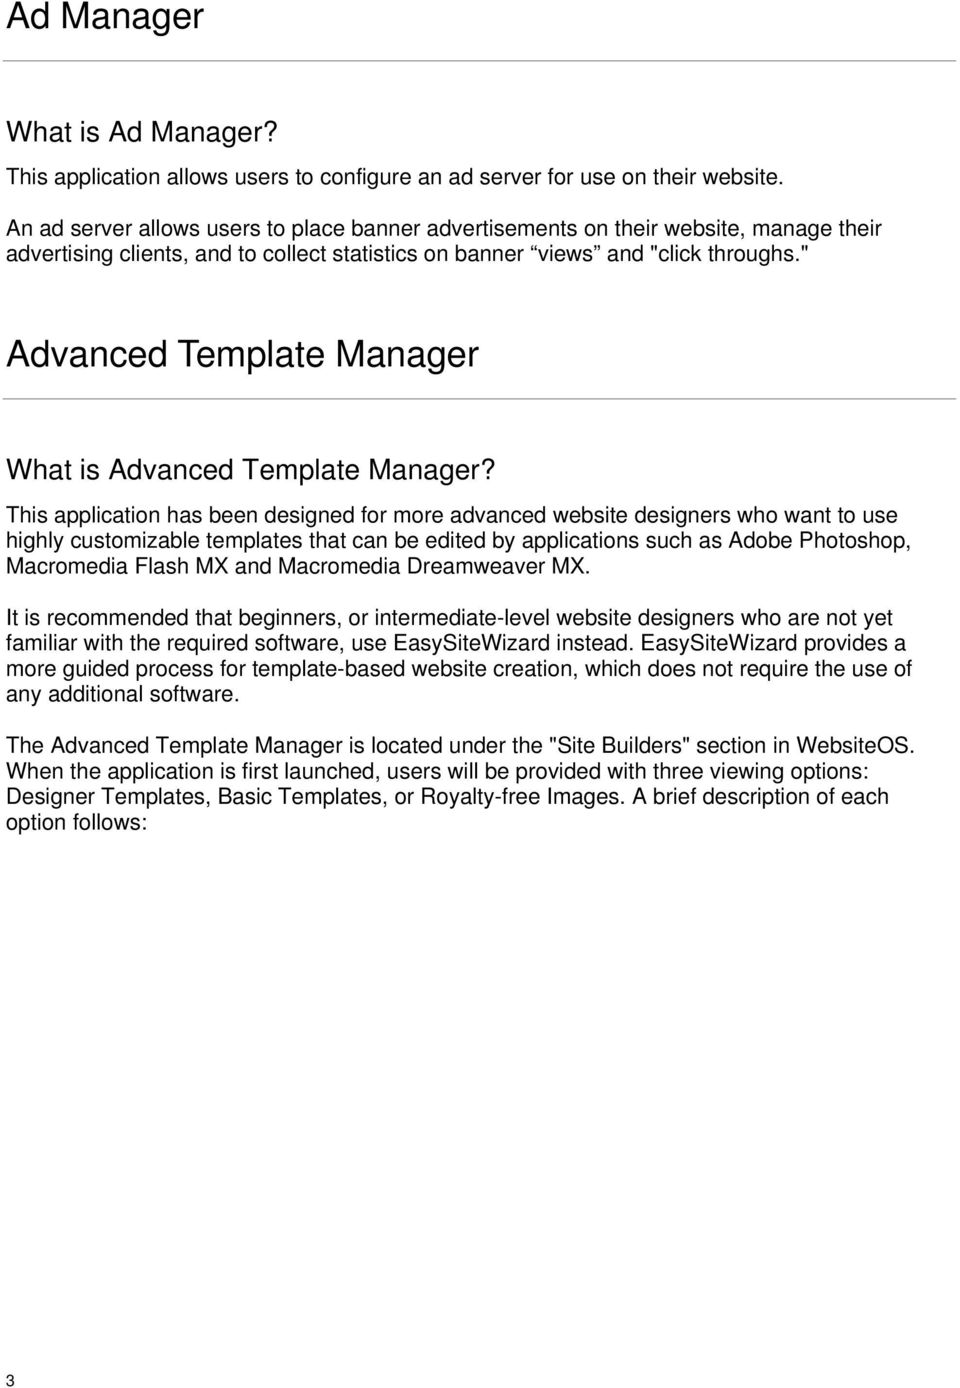 """ Advanced Template Manager What is Advanced Template Manager?"